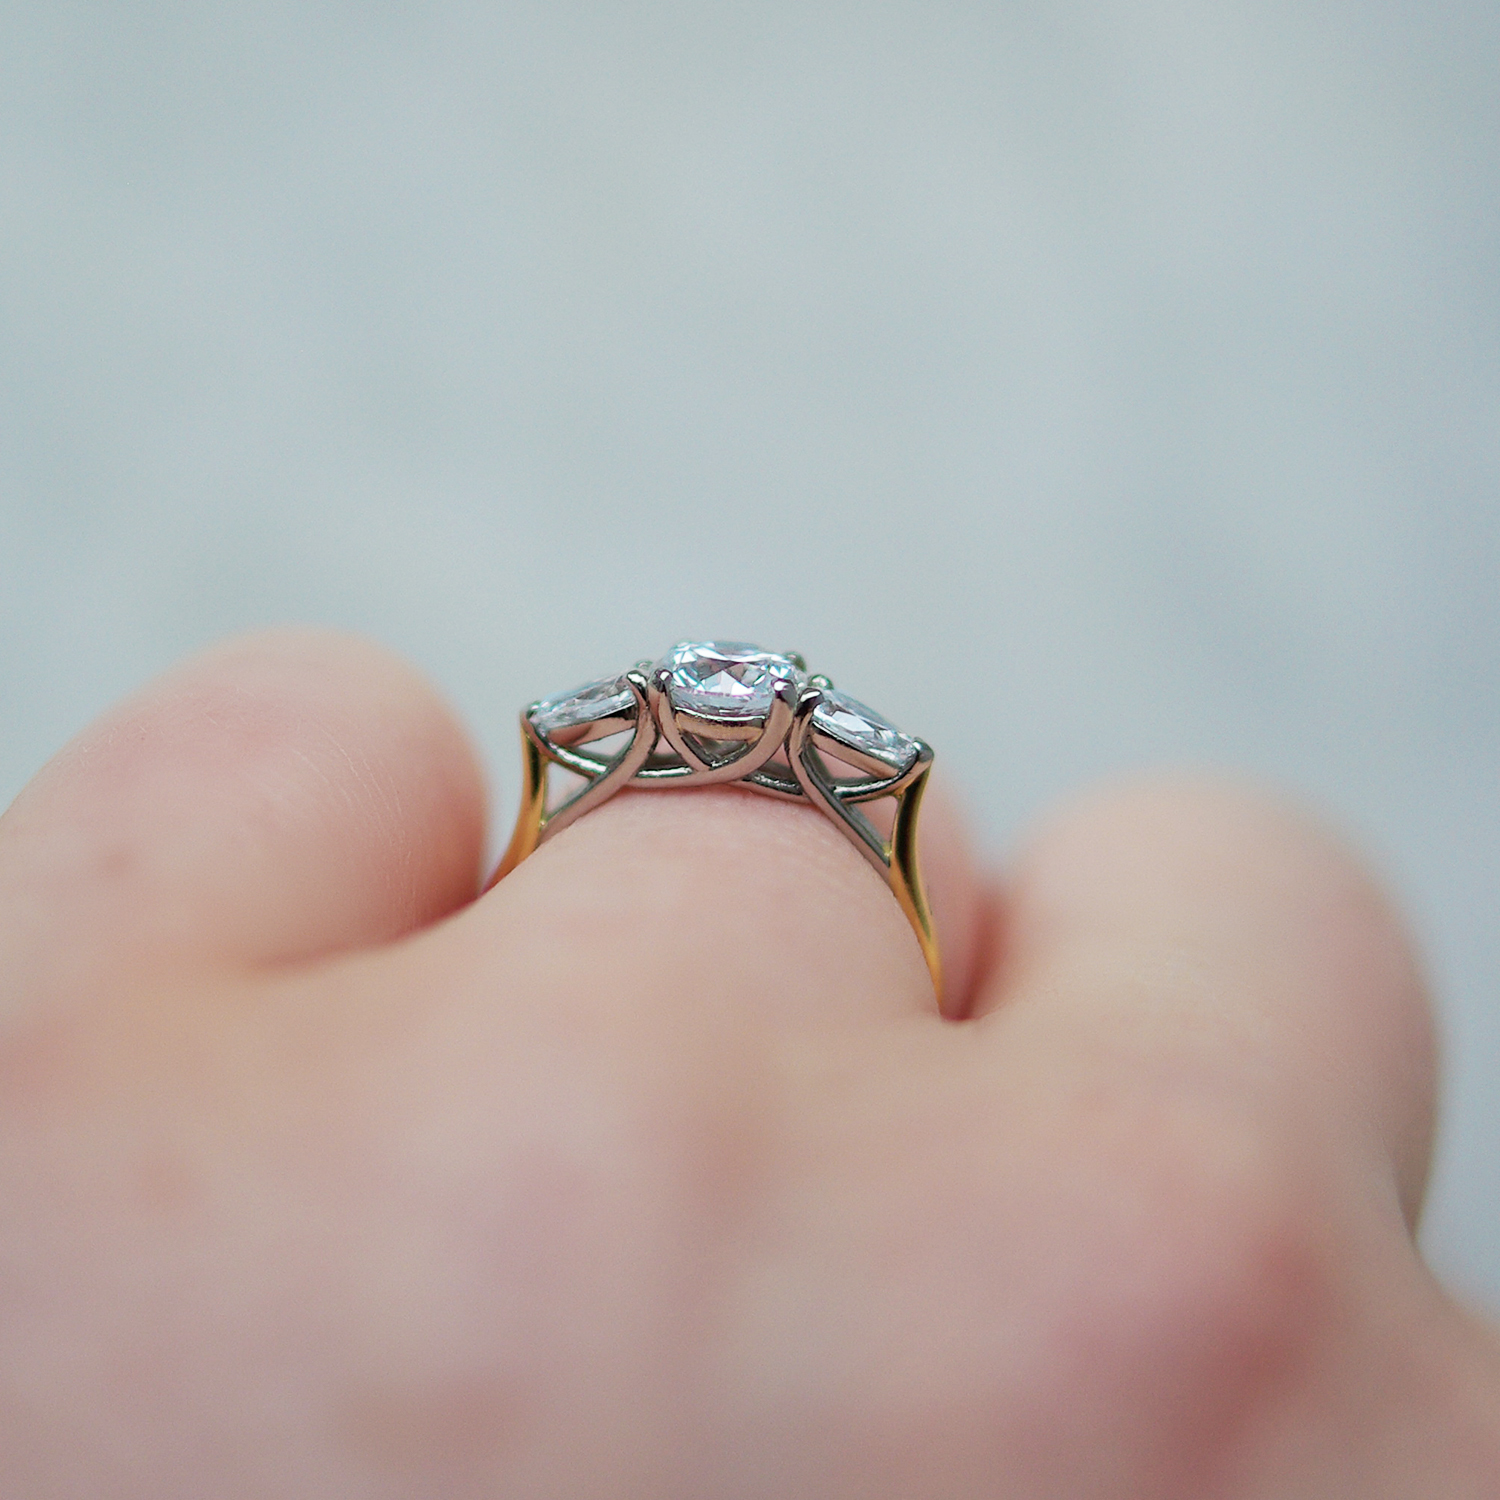 Trilogy Engagement Ring With a Round Brilliant Cut Diamond And Pear Cut Diamond Outers